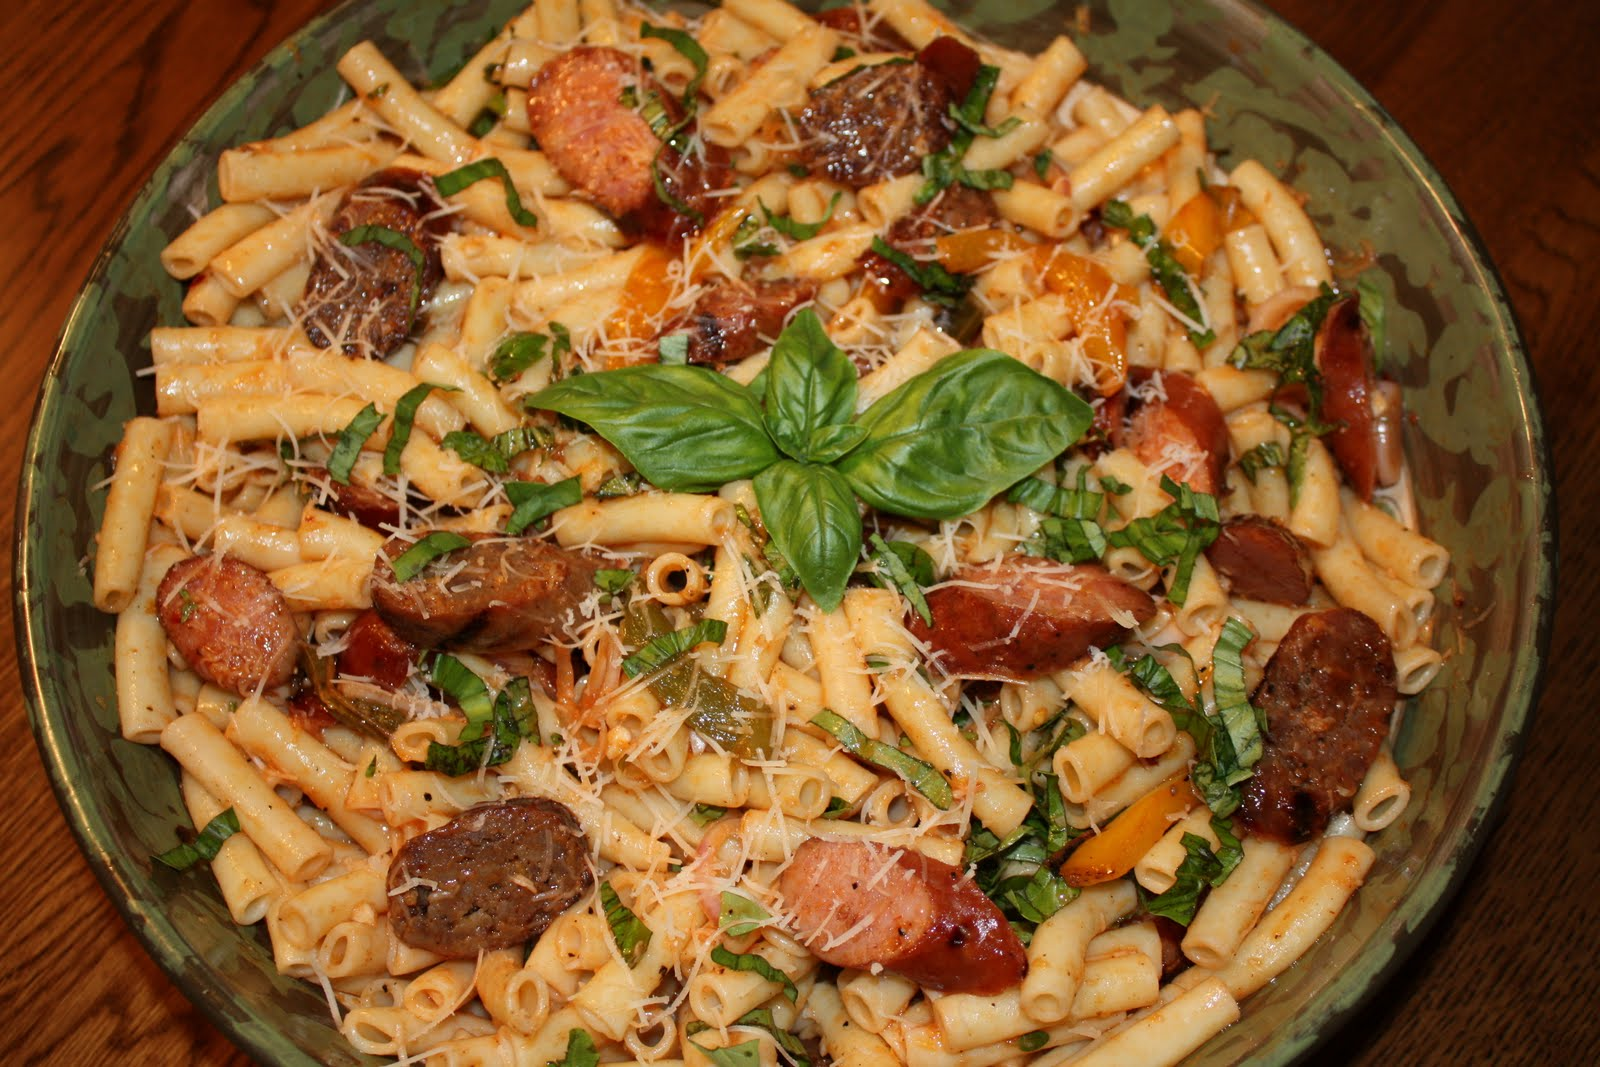 Fleur de Lolly: Pasta Salad with Grilled Sausages and Peppers